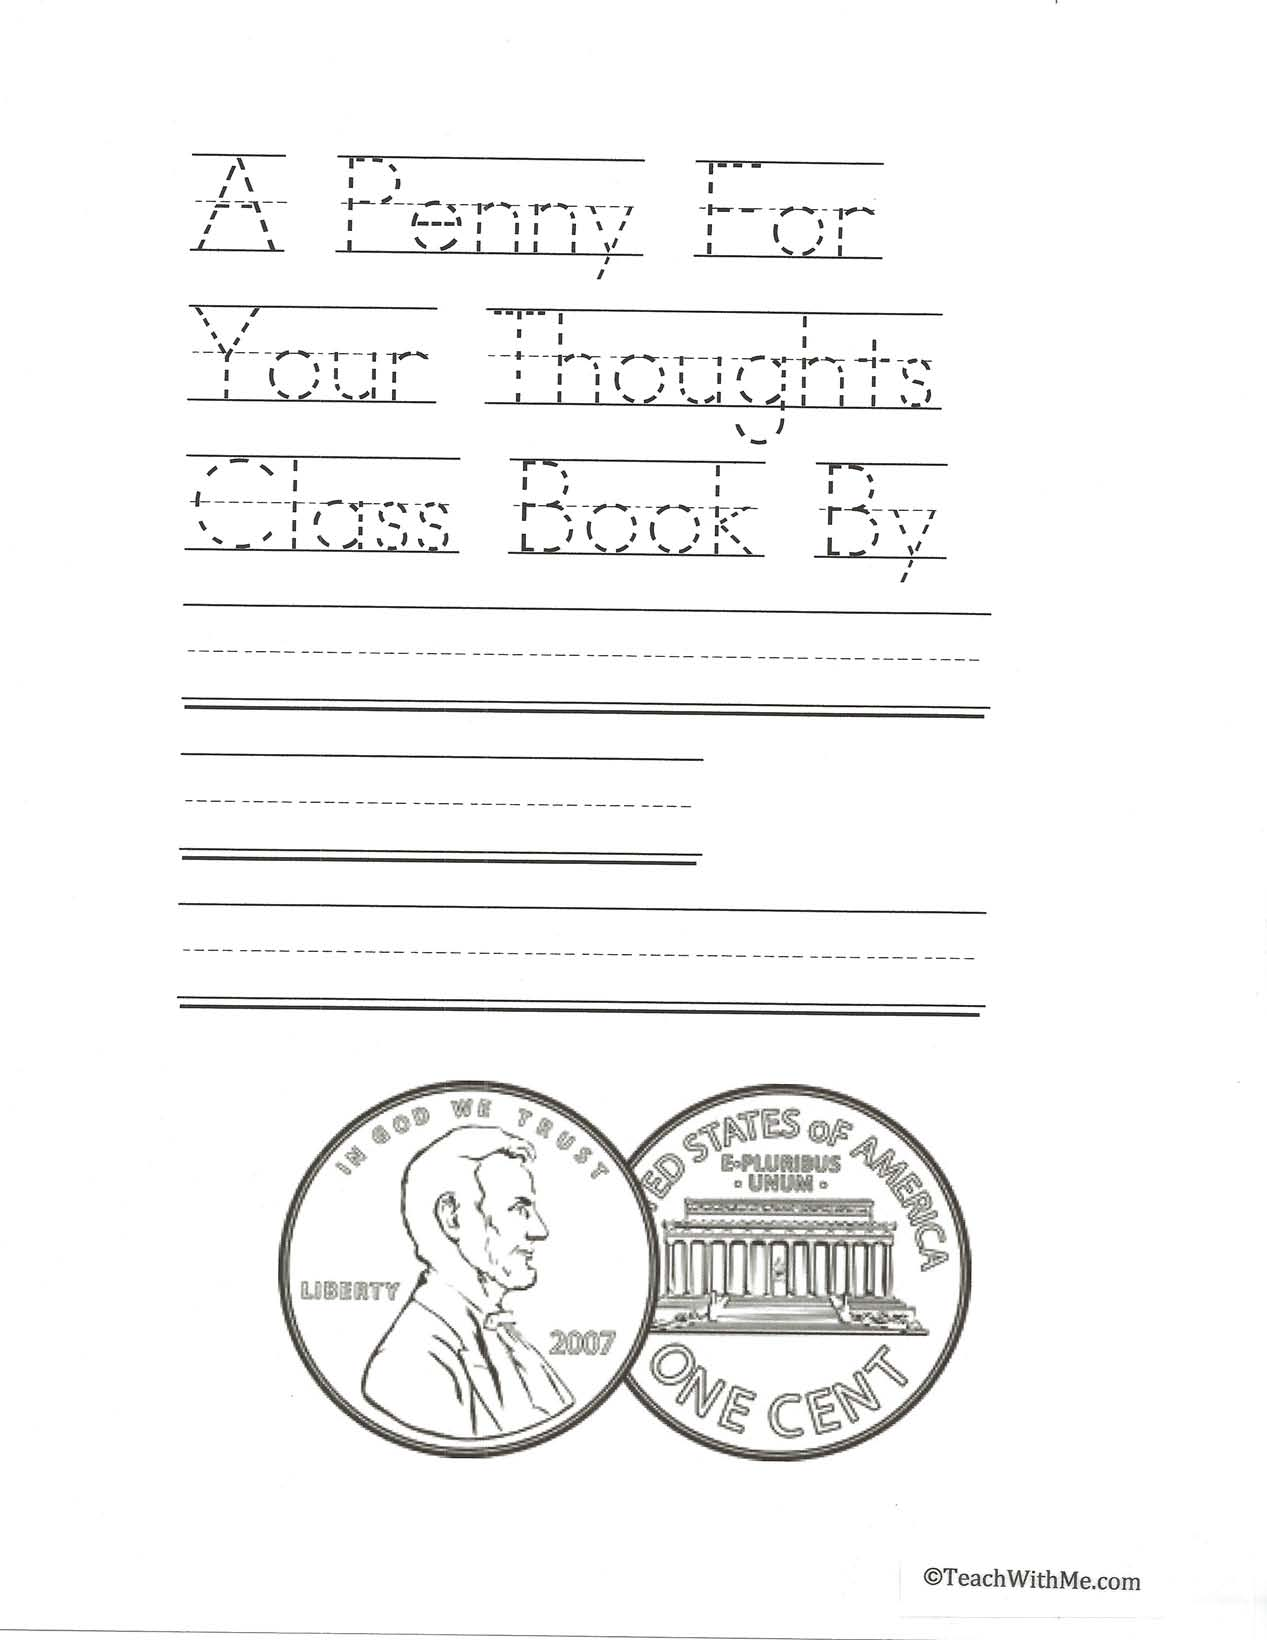 presidents day activities, presidents day ideas, presidents day booklet, presidents day writing prompts, lincoln activities, lincoln lessons, penny activities, penny booklet, penny lessons, money lessons, money activities, coin lessons, coin activities,